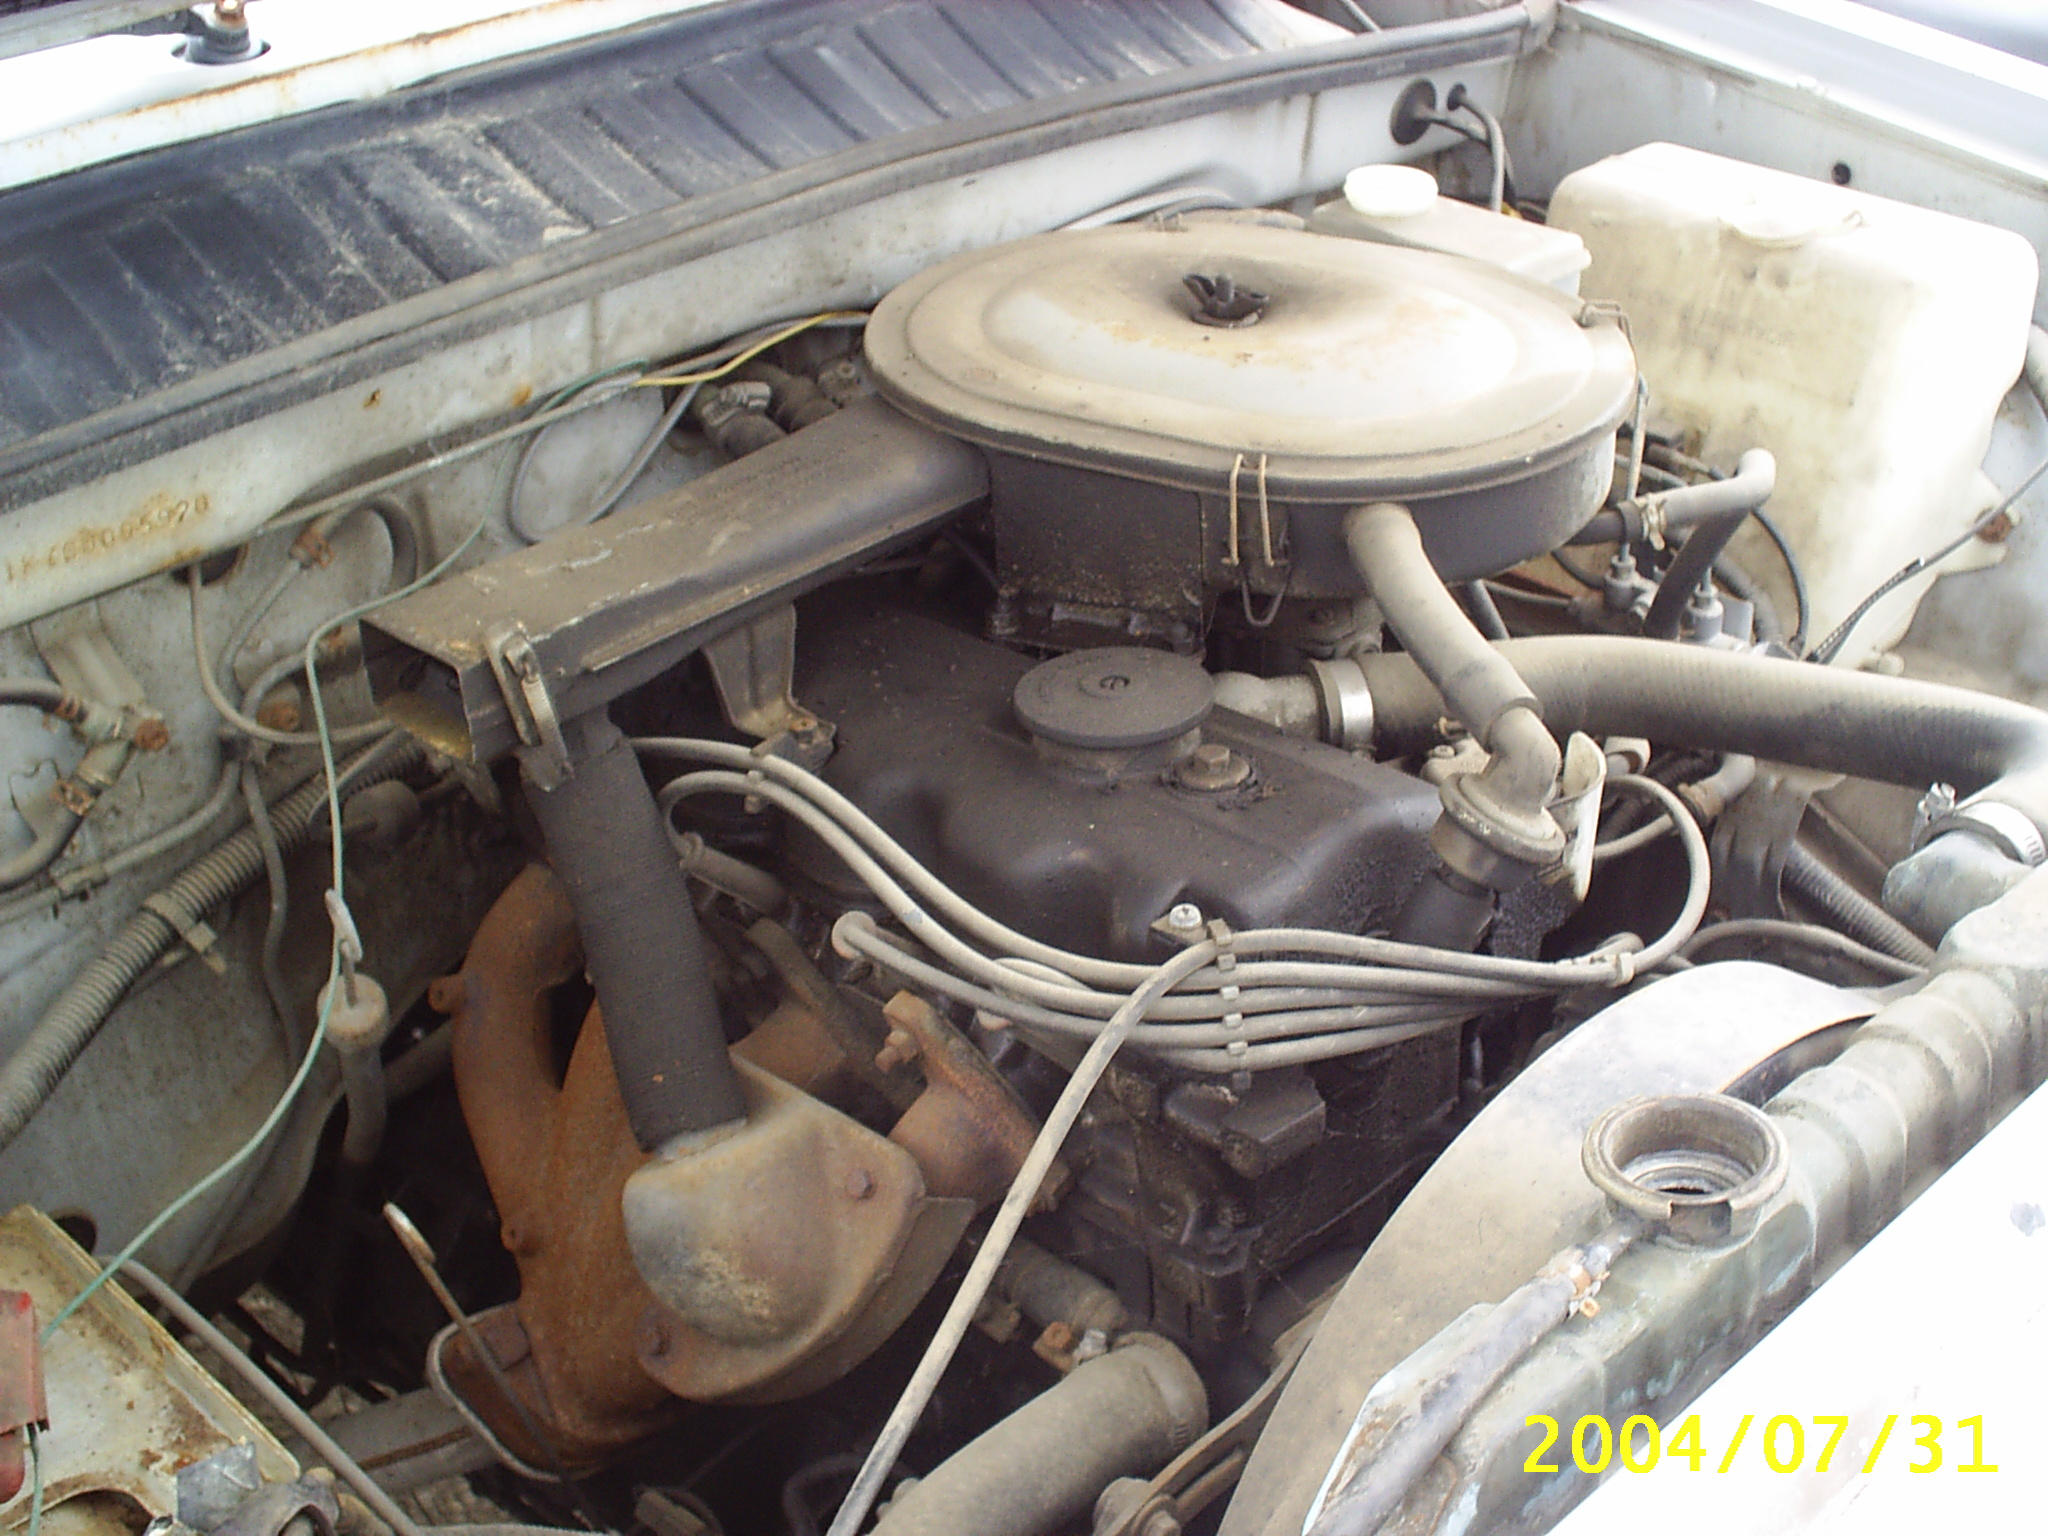 1998 Mitsubishi Mirage Engine 1 5 Diagram 6 Liter Free Image